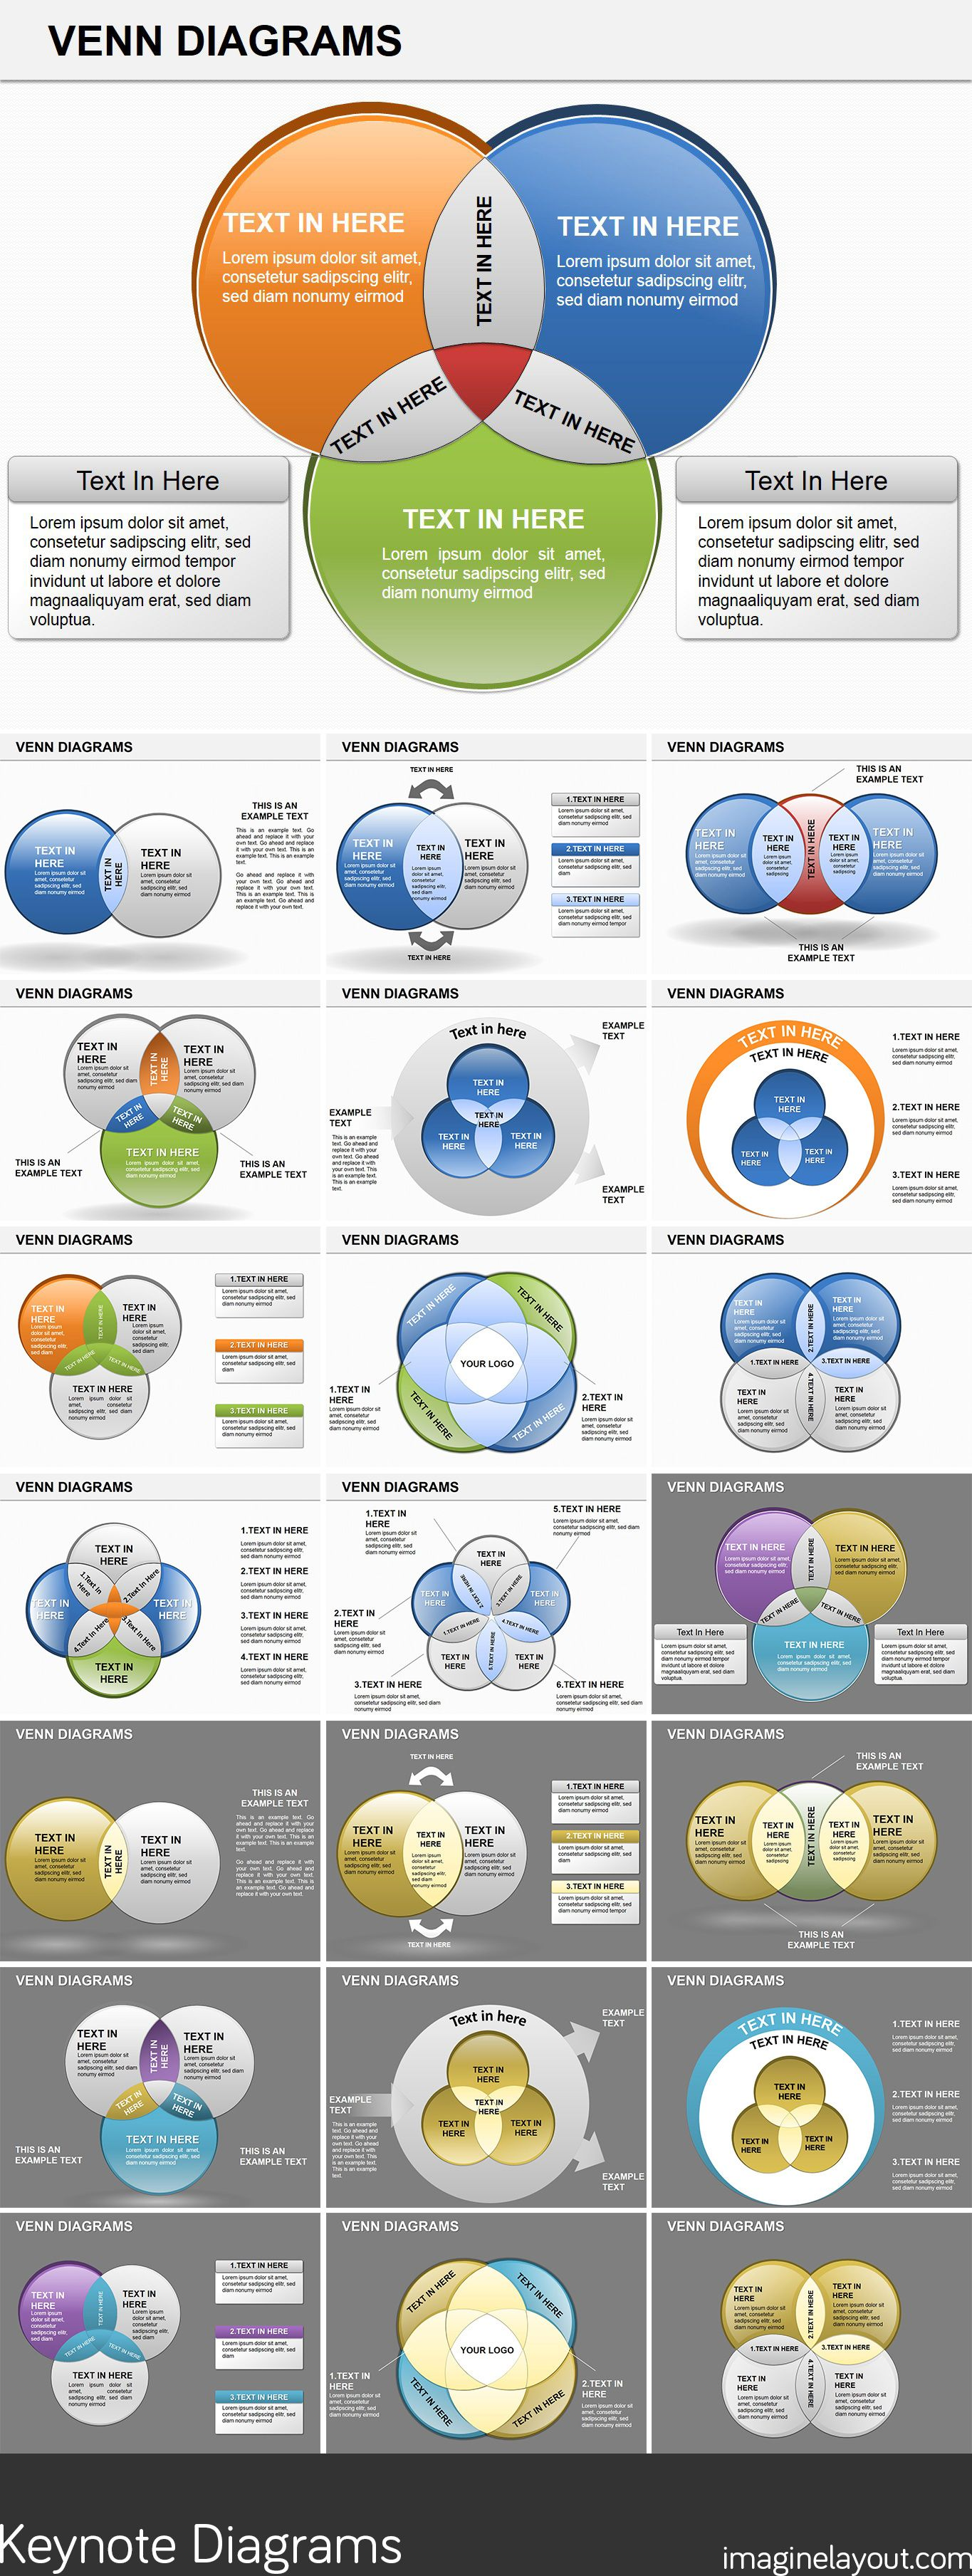 Venn Diagrams Keynote Template  Venn Diagrams Keynote And Diagram